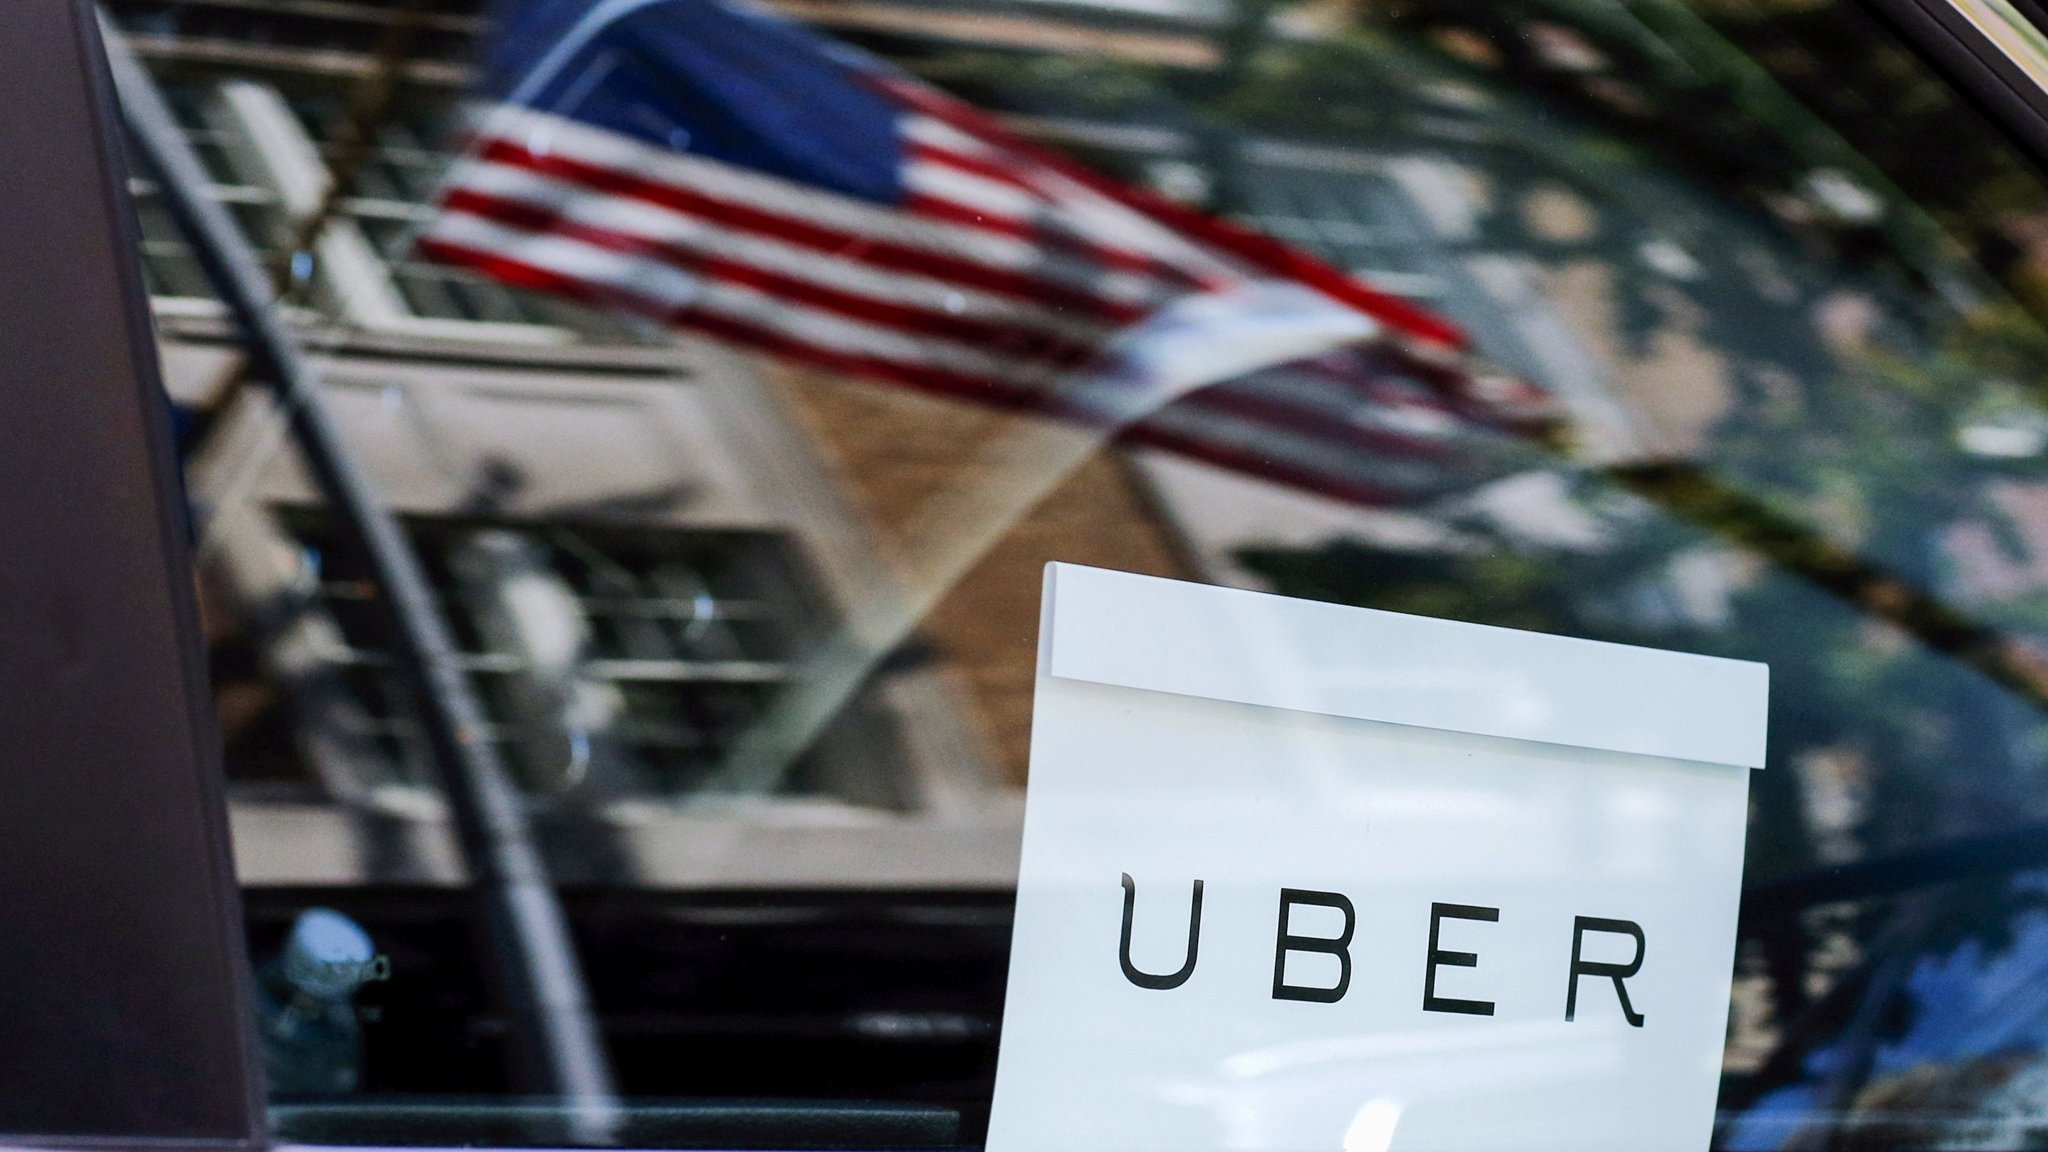 Uber losses widen as SoftBank investment looms